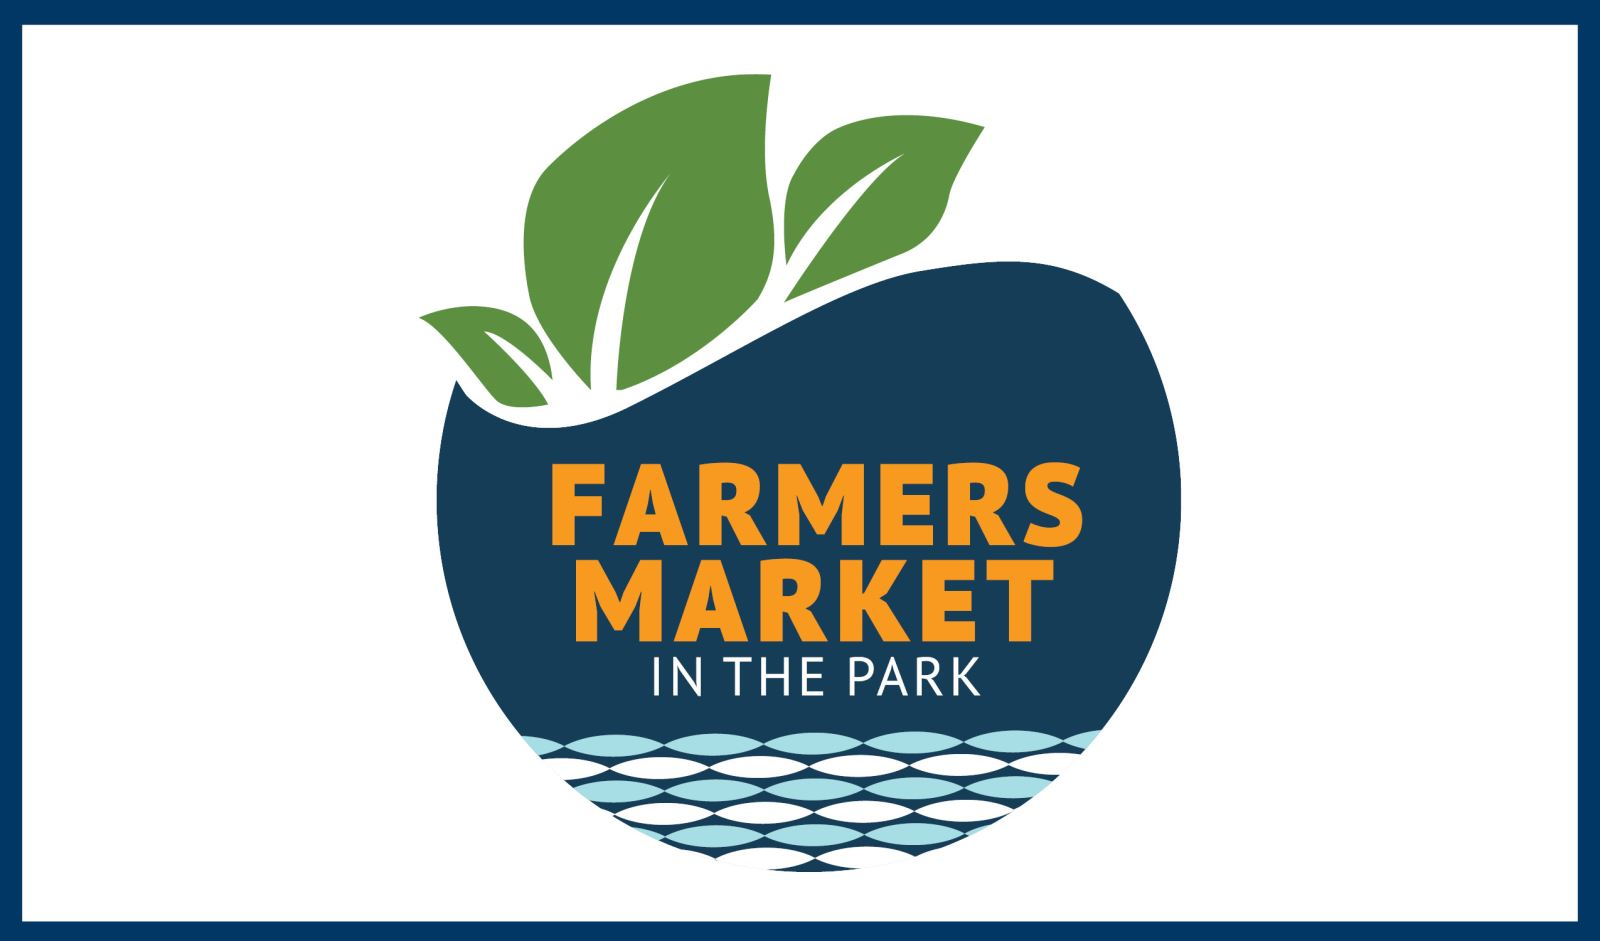 Farmers Market in the Park | Lakes Area